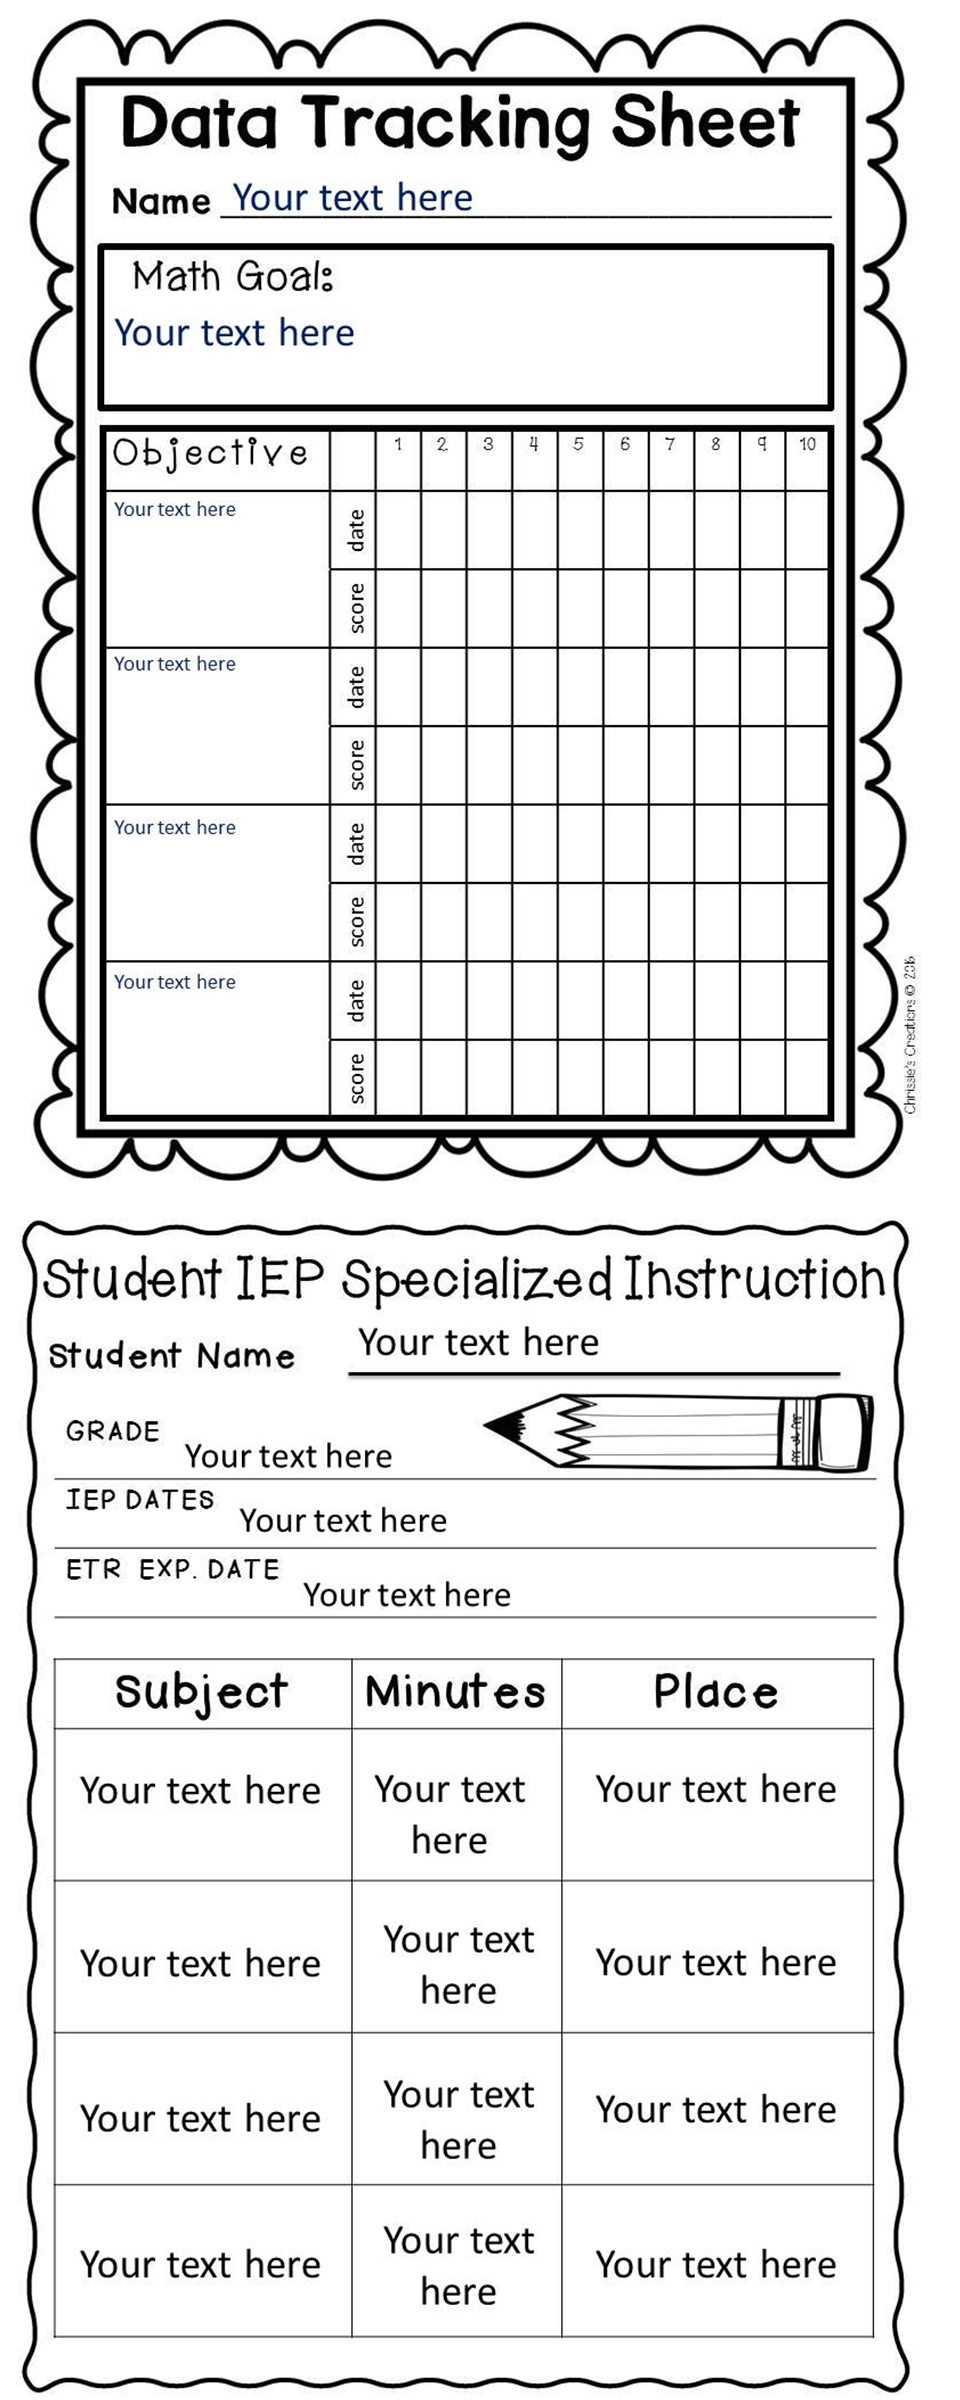 Special Education: assessment and organization Start up kit- bundle Special Education Forms make my job as an intervention specialist so much easier and organized. With all of the paperwork required for IEP's, progress monitoring, RTI interventions, I like to keep everything in one safe and organized place. Check out the products in Chrissie's Creations store on TpT for more details. Education: assessment and organization Start up kit- bundle Special Education Forms make my job as an intervention specialist so much easier and organized.  With all of the paperwork required for IEP's,  progress monitoring, RTI interventions, I like to keep everything in one safe and organized place.  Check out the